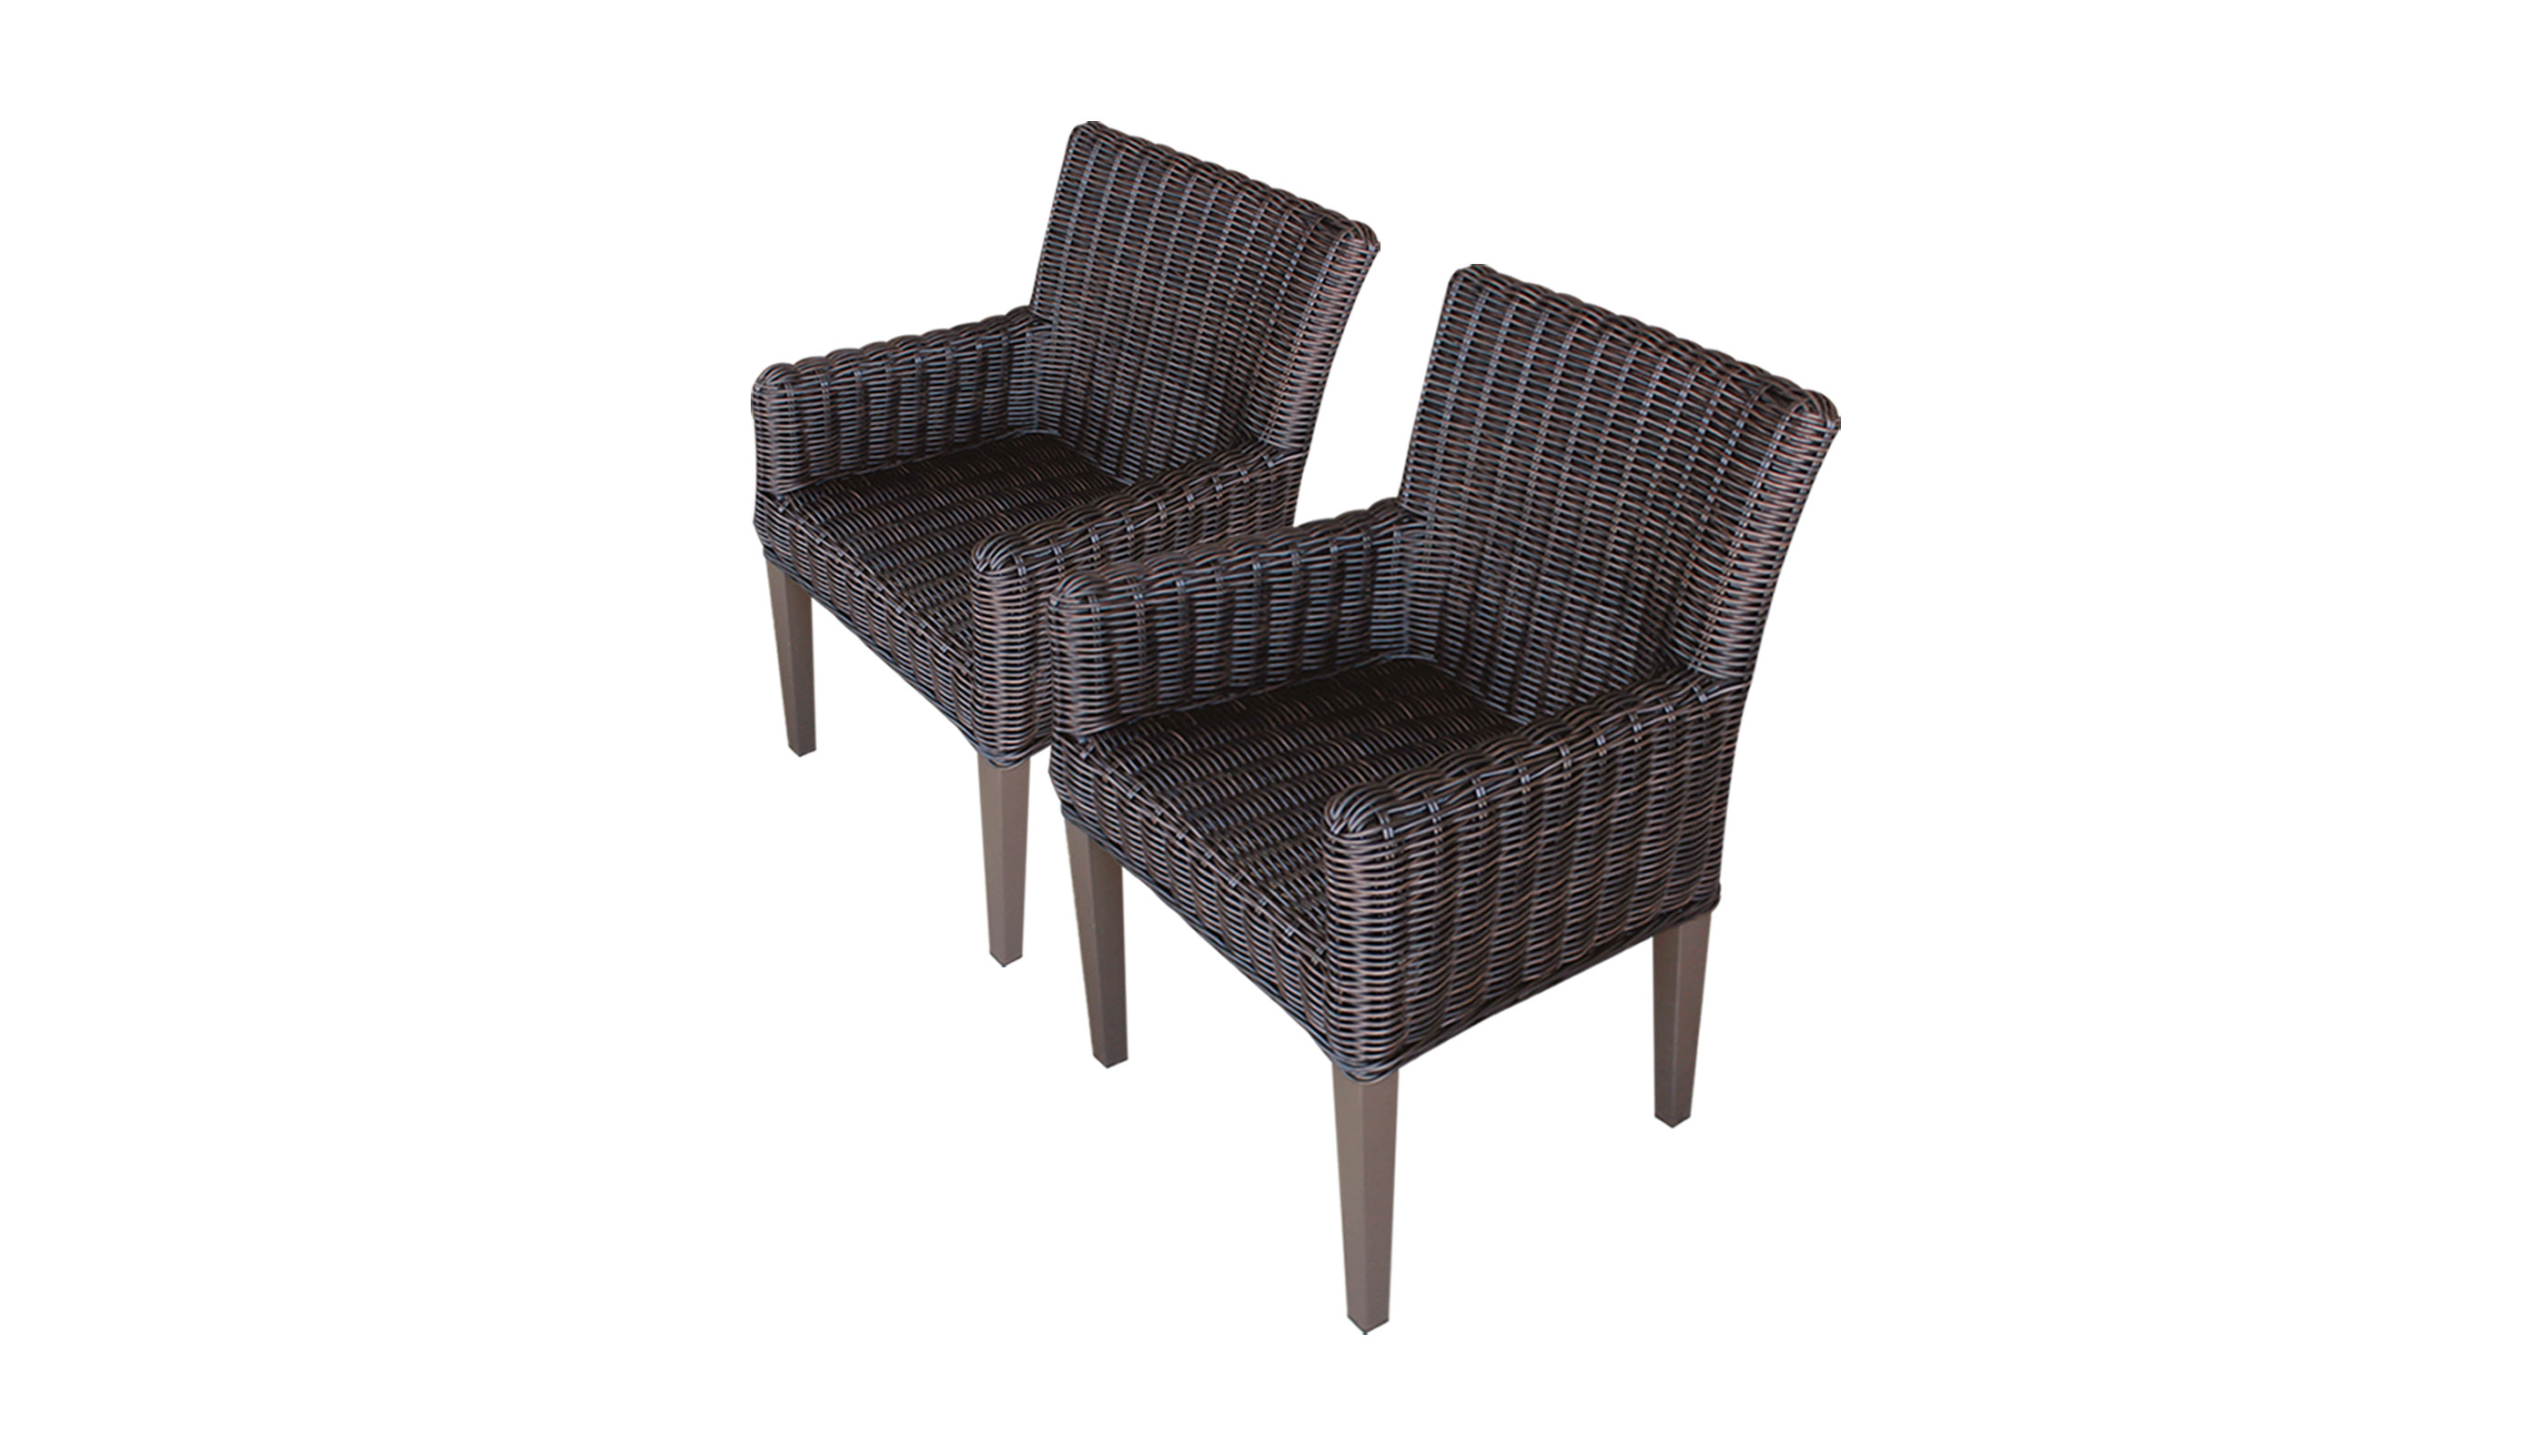 2 Rustico Dining Chairs With Arms